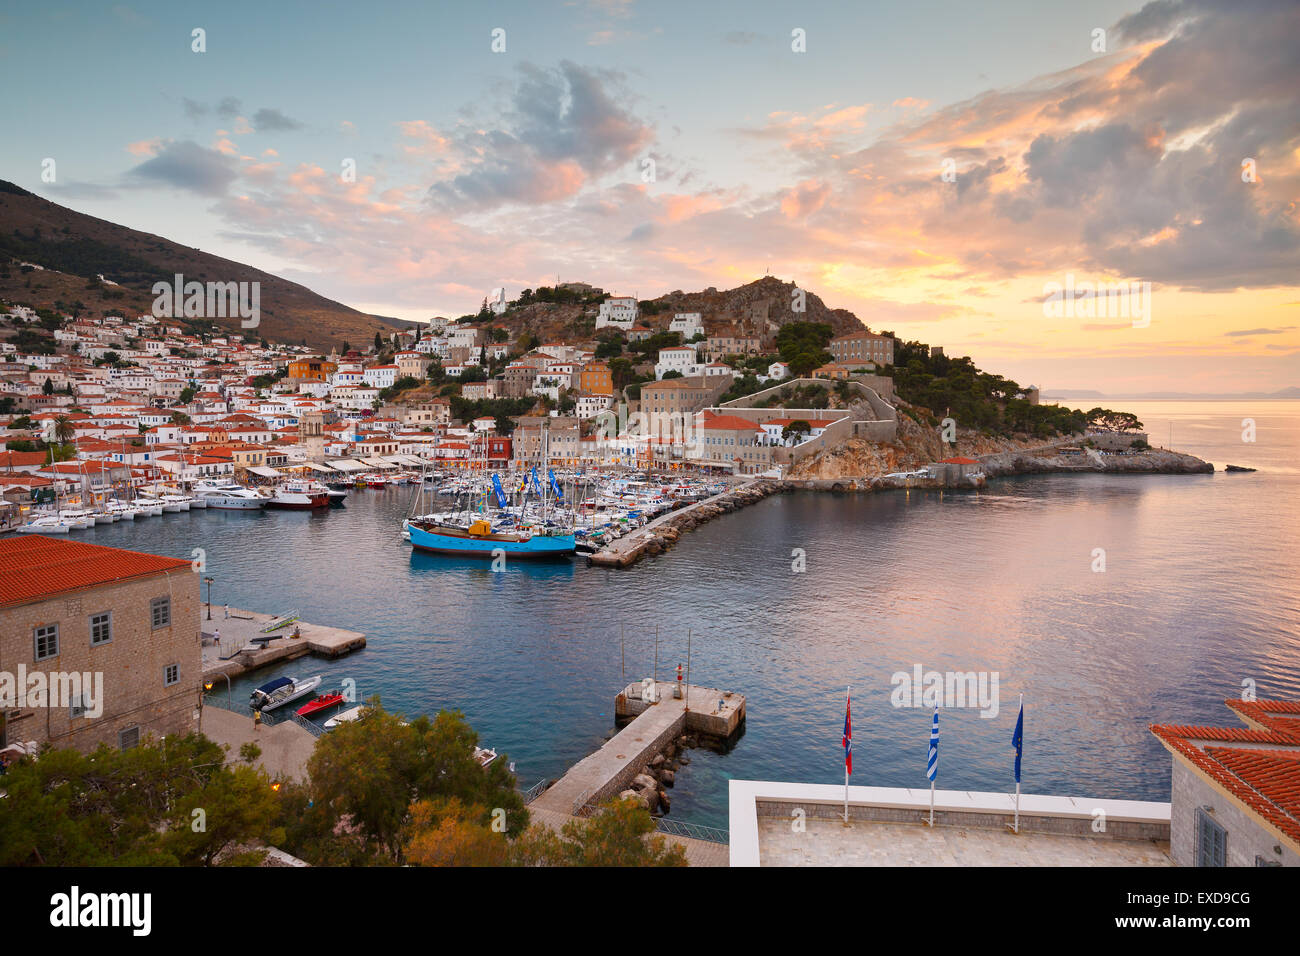 View of the port of Hydra - Stock Image